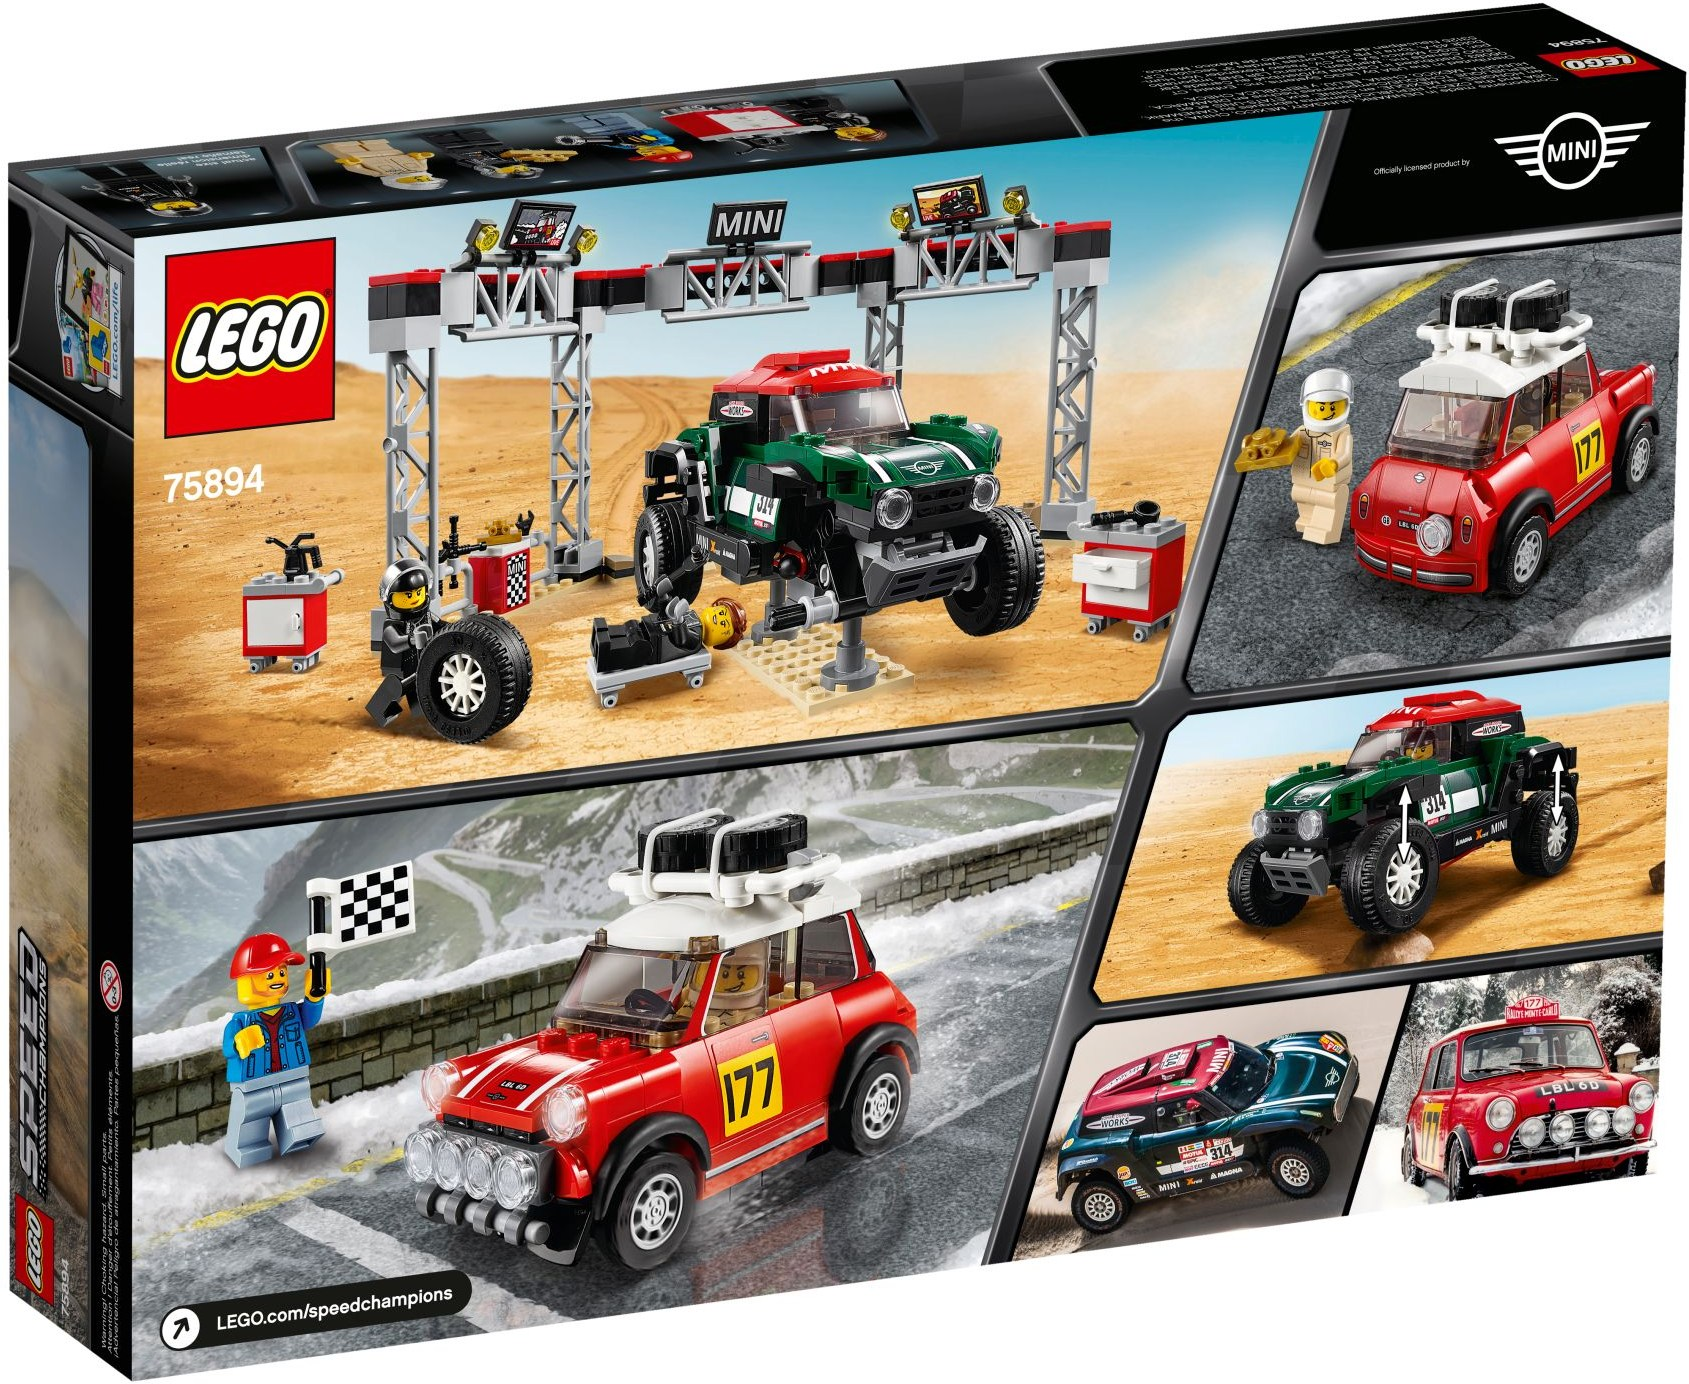 LEGO Speed Champions Archives - The Brick Show